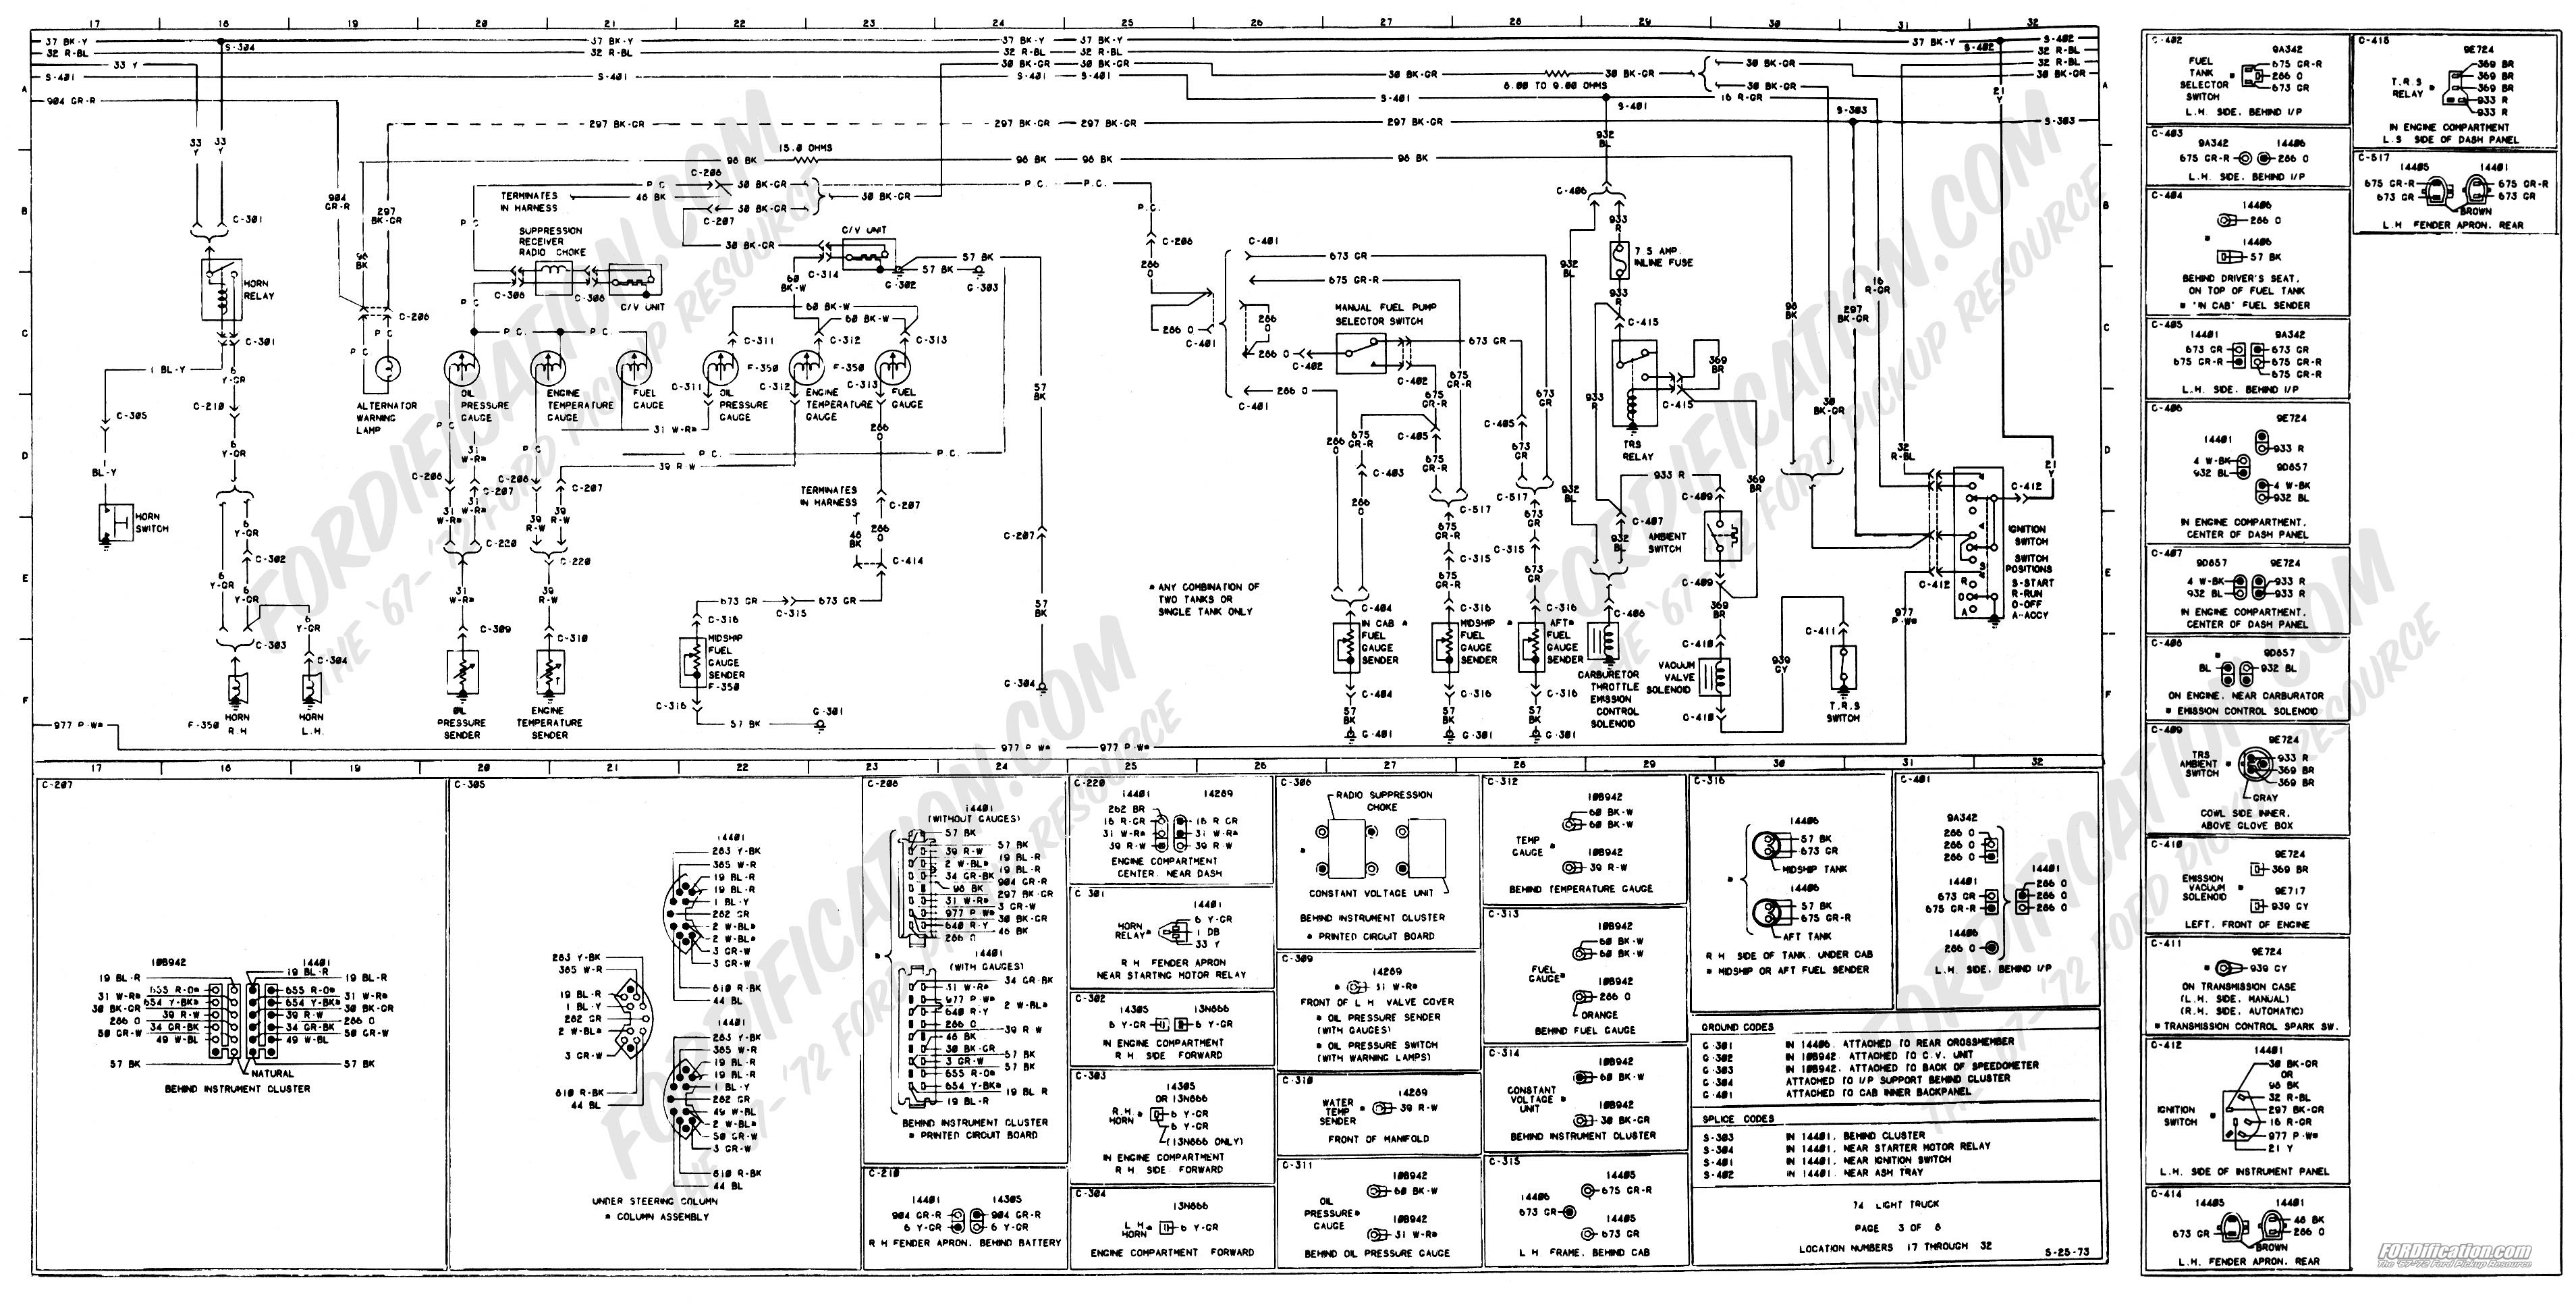 Ford 460 Engine Diagram 1973 1979 Truck Wiring Diagrams Schematics Fordification Of